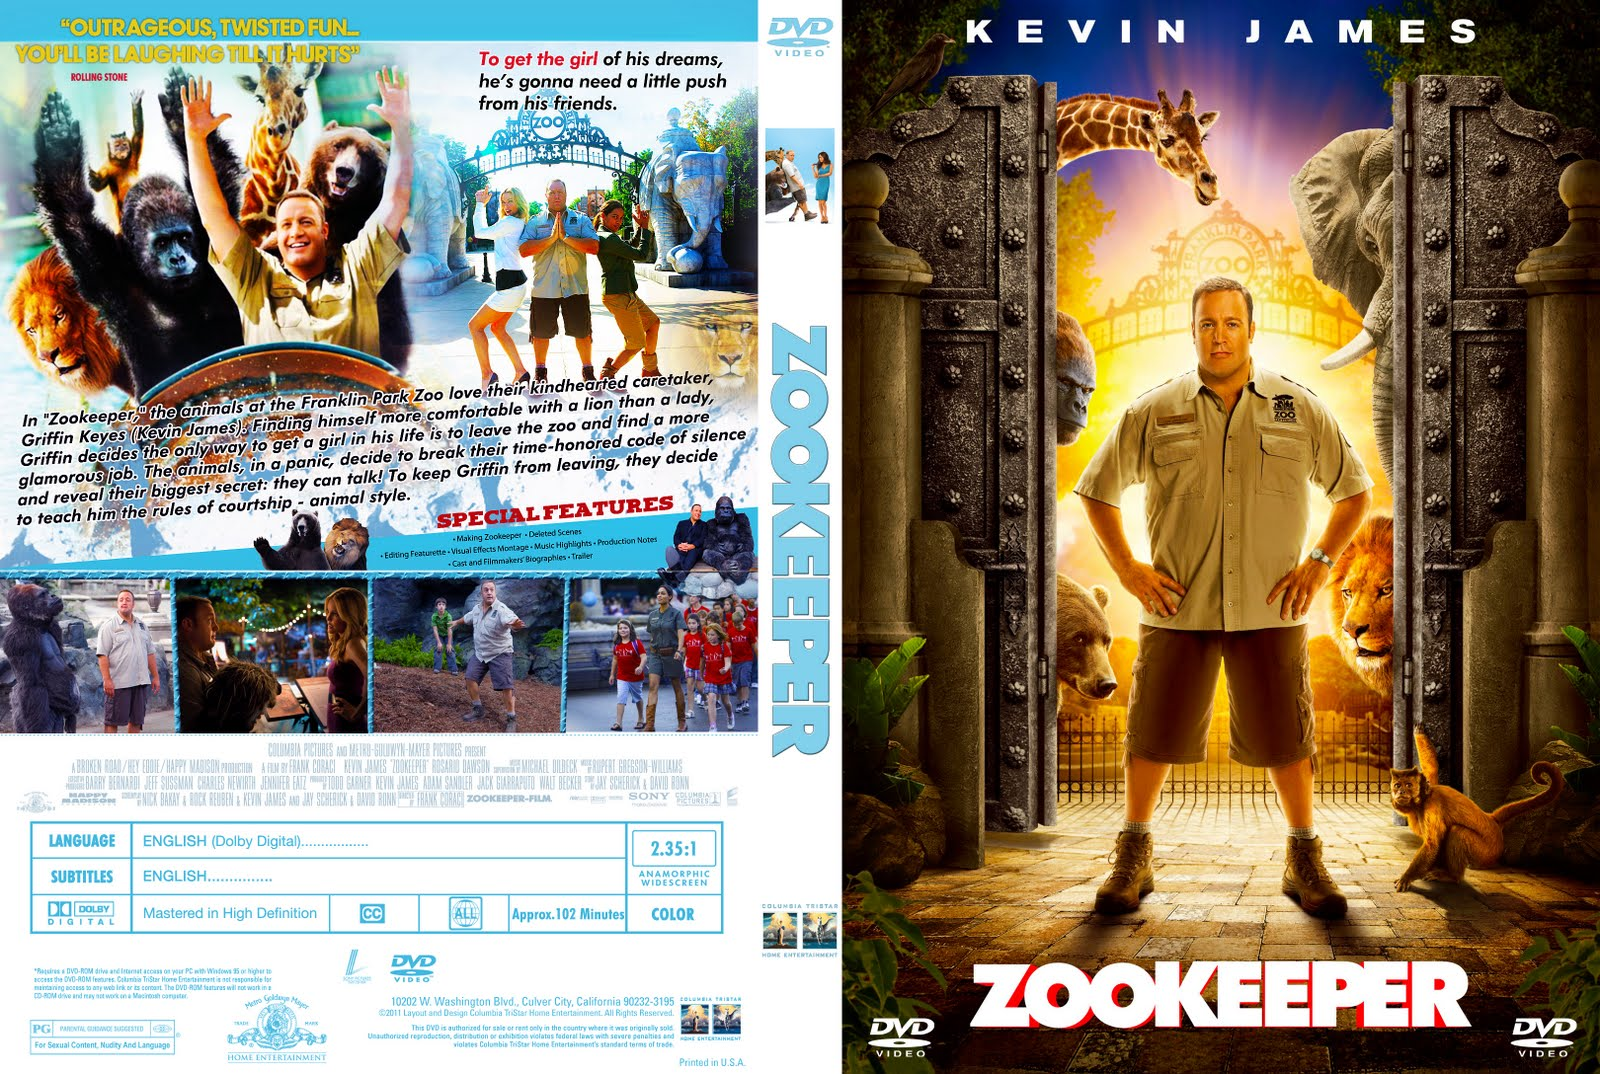 DVD COVERS AND LABELS: Zookeeper